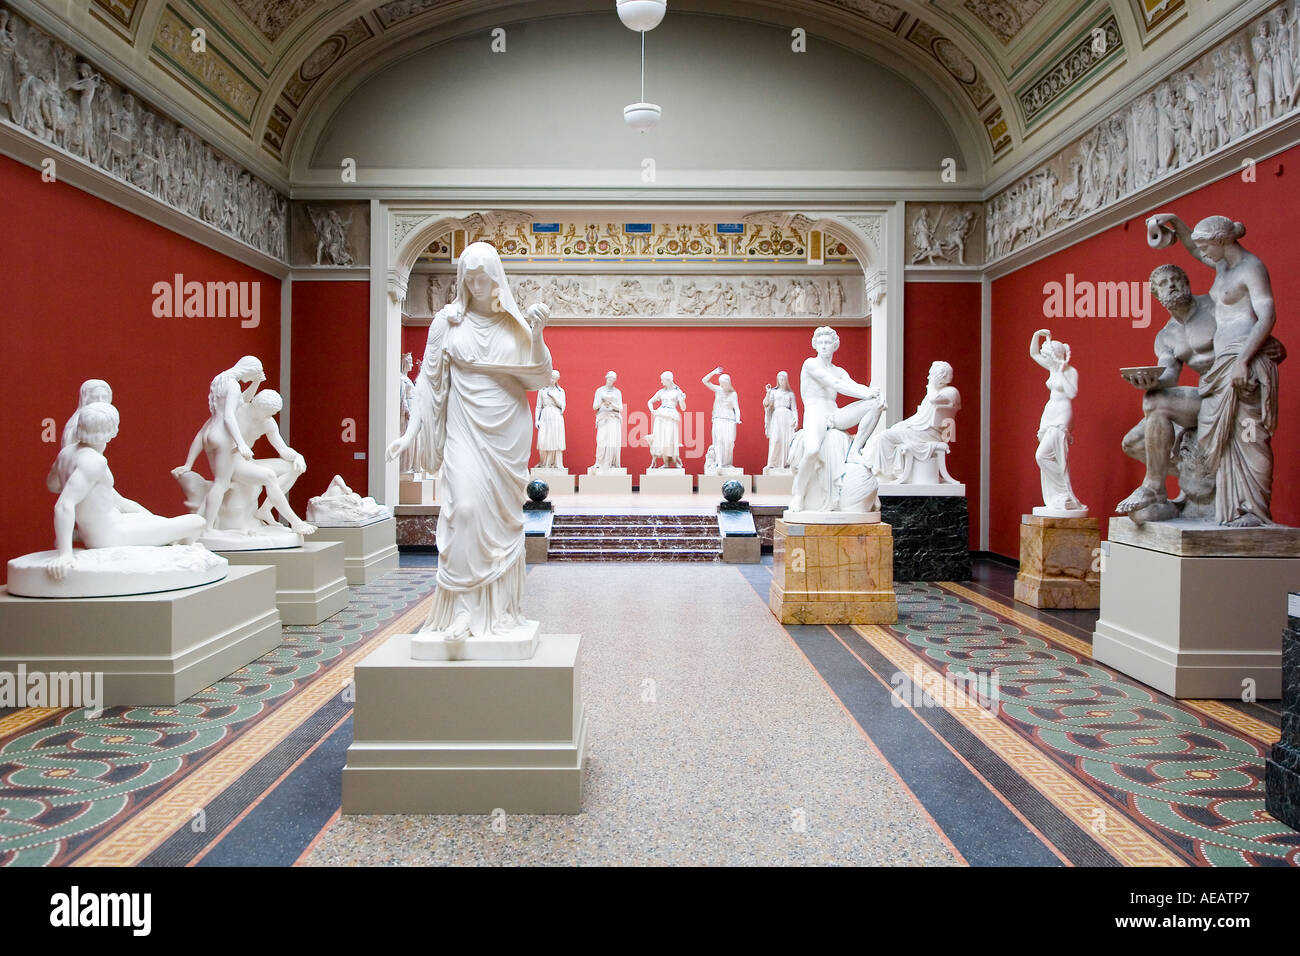 Ny Carlsberg Glyptotek Photo Stock